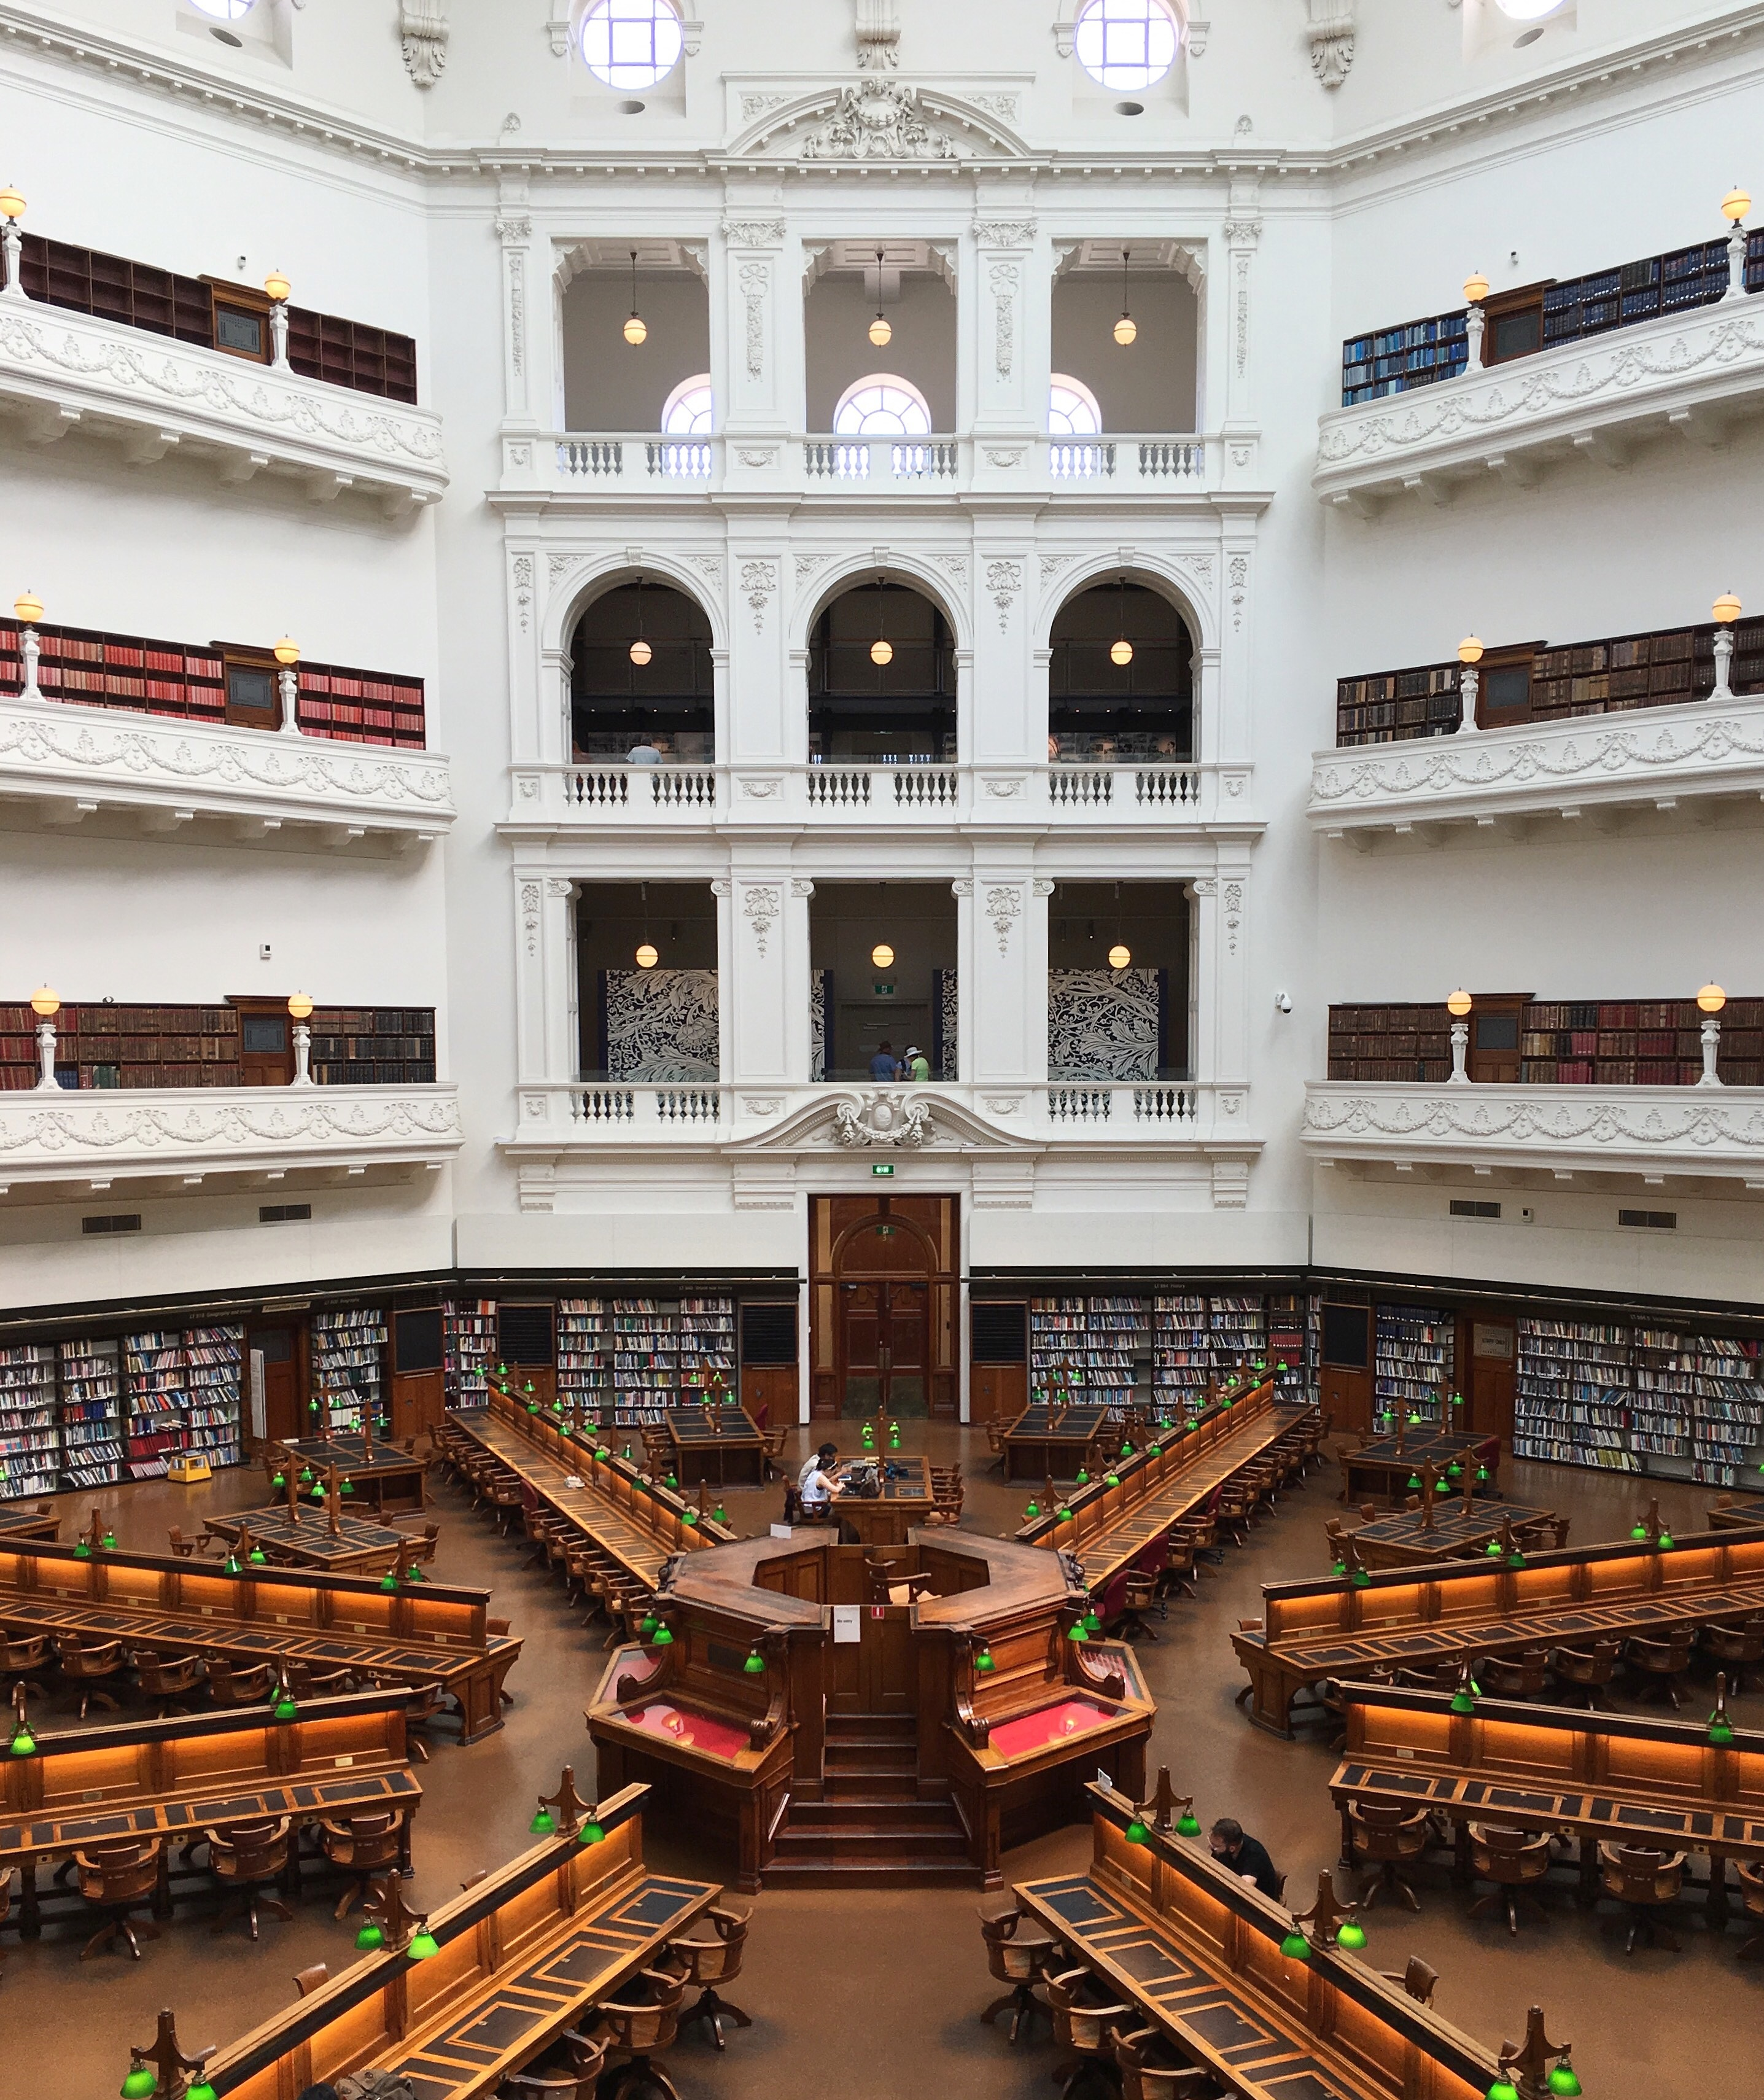 Library, Book, Building, Construction, Keep, HQ Photo